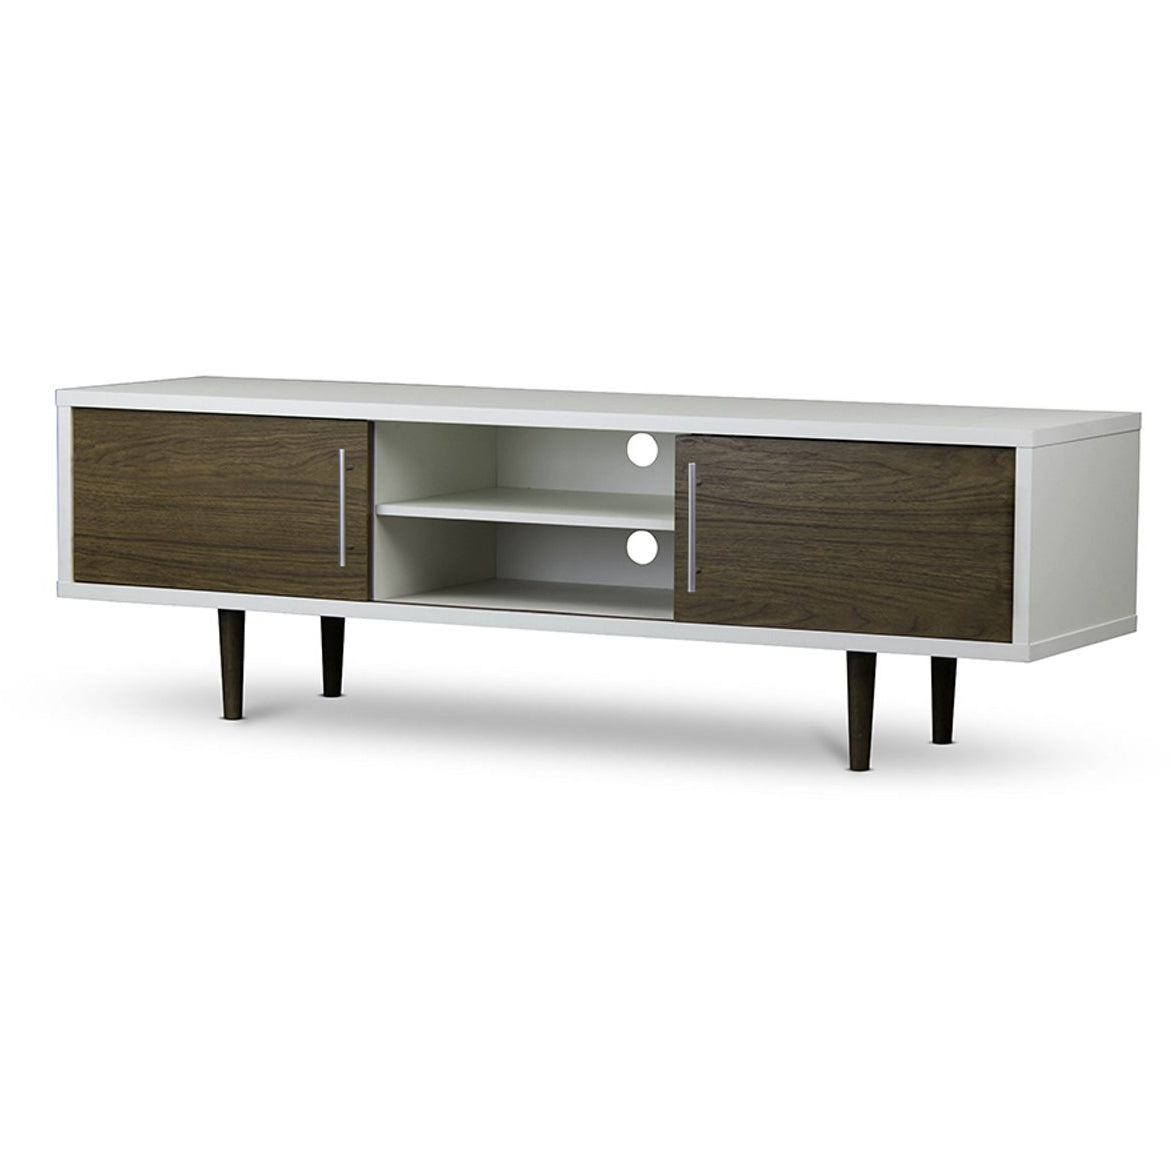 Baxton Studio Gemini Wood Contemporary TV Stand Baxton Studio-TV Stands-Minimal And Modern - 1